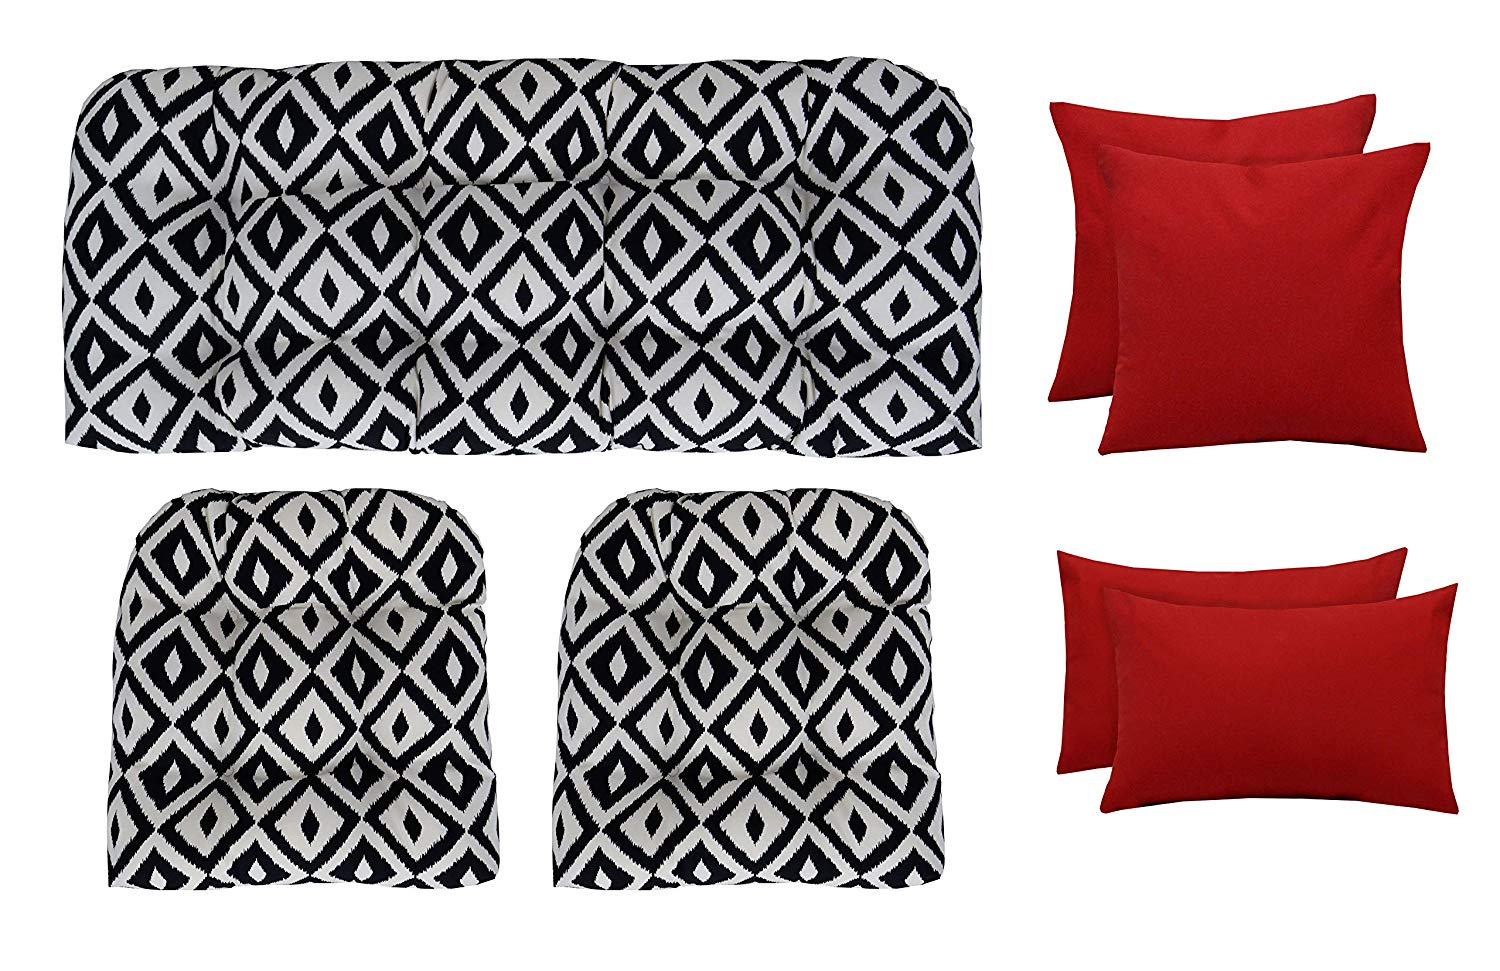 "RSH Décor Indoor Outdoor Wicker Tufted 7 Piece Set - Loveseat Settee, Chair Cushions, Square & Lumbar Pillows - Made of Aztec & Solid Red Fabrics (41""W x 19""D & 19""W x 19""D + 20""W x 12""H & 17""Sq)"